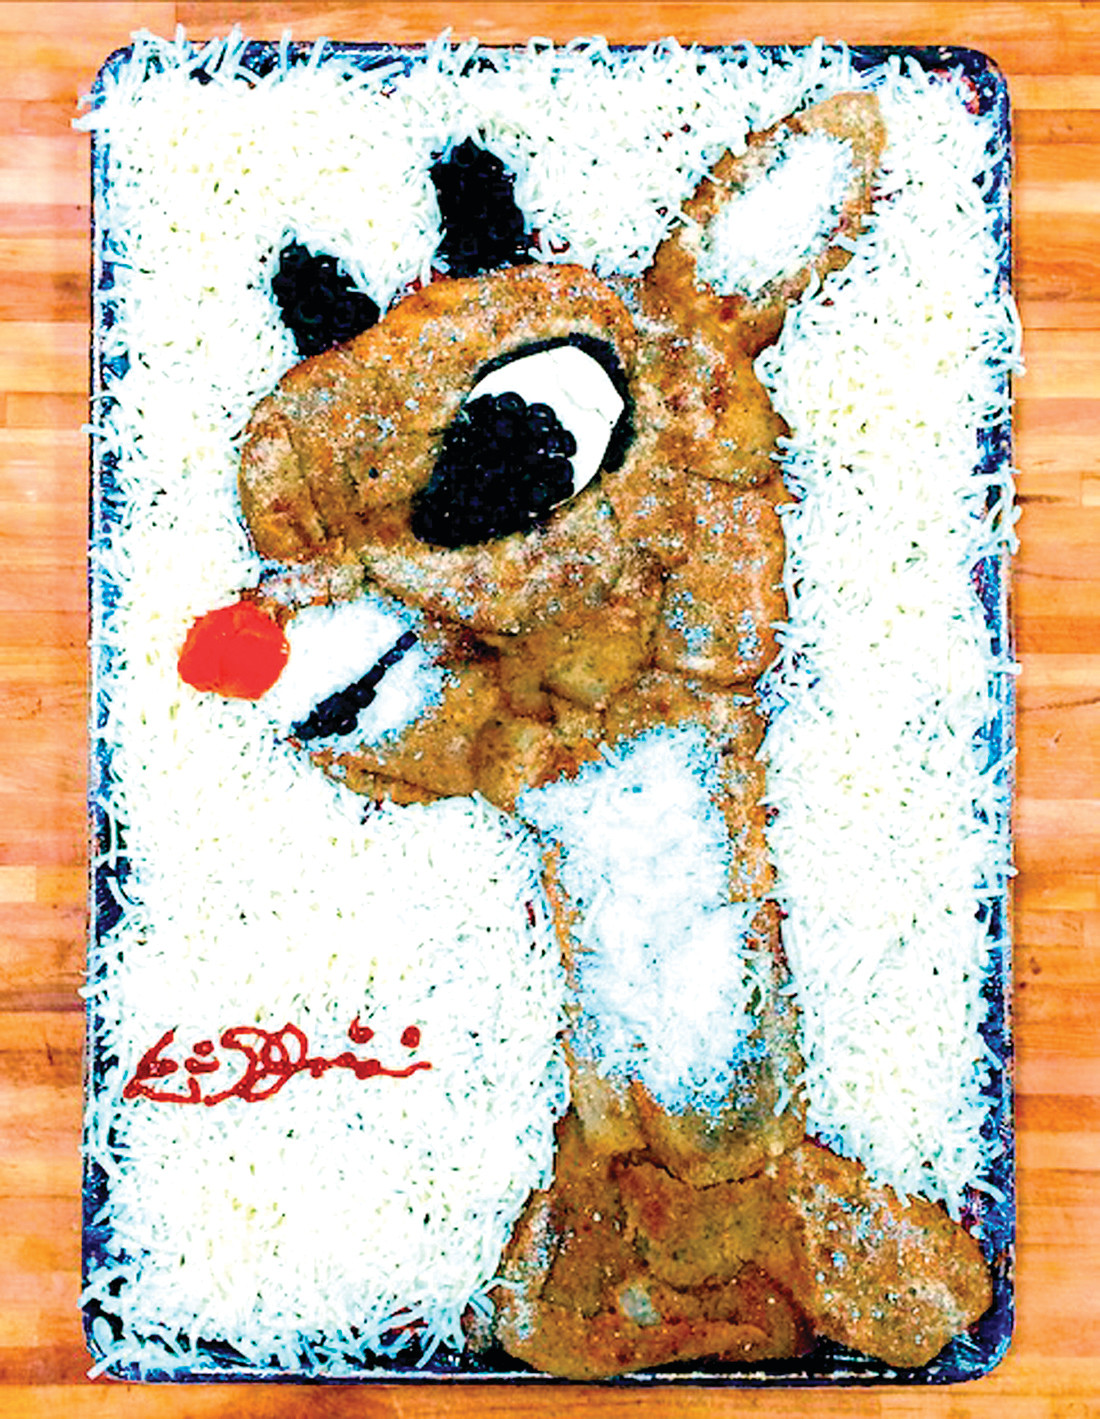 RUDOLPH THE RED NOSE REINDEER:  While Rudolph's nose may be red, the brown in this pizza was created with eggplant that was breaded. Each pizza that Eric creates is personally signed by him.